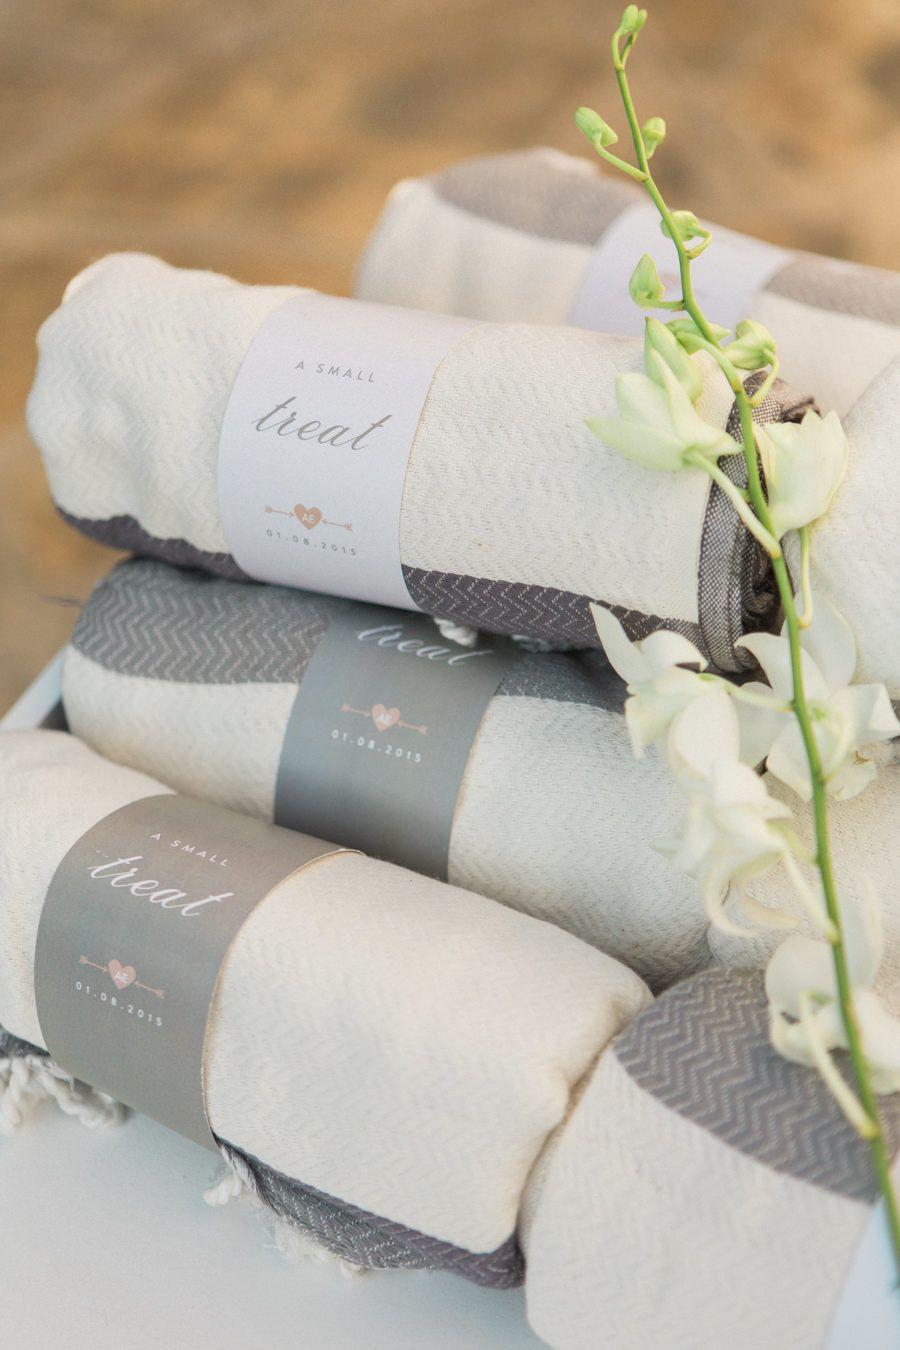 Blankets as a souvenir for weddings during the winter